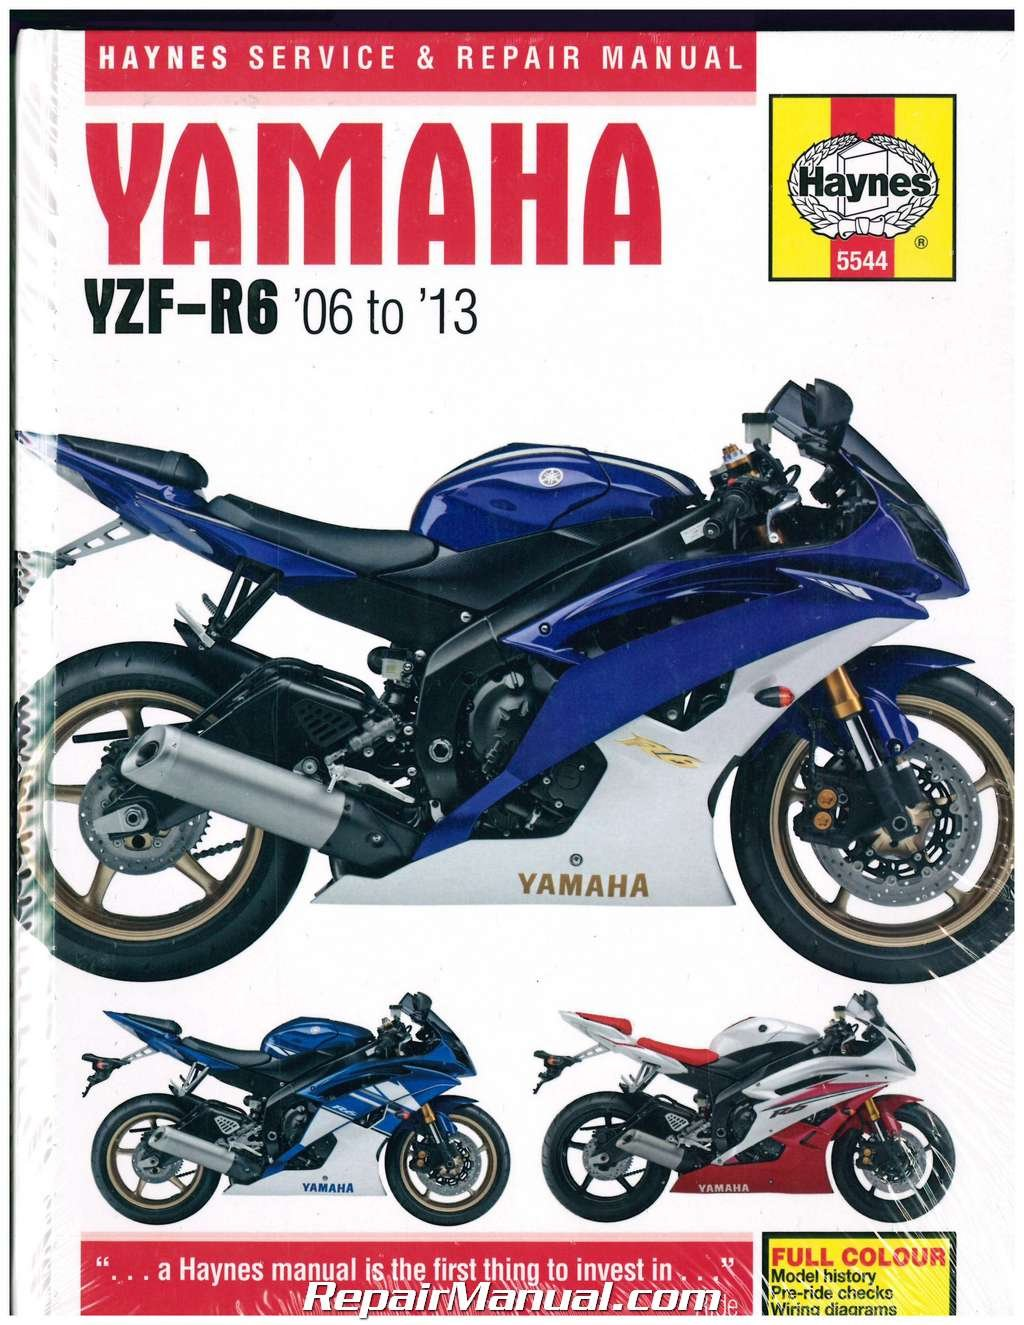 Wiring Diagram 2006 Yamaha Yzf R6 Library R1 Electrical Motorcycle H5544 2013 Haynes Repair Manual Manufacturer Amazon